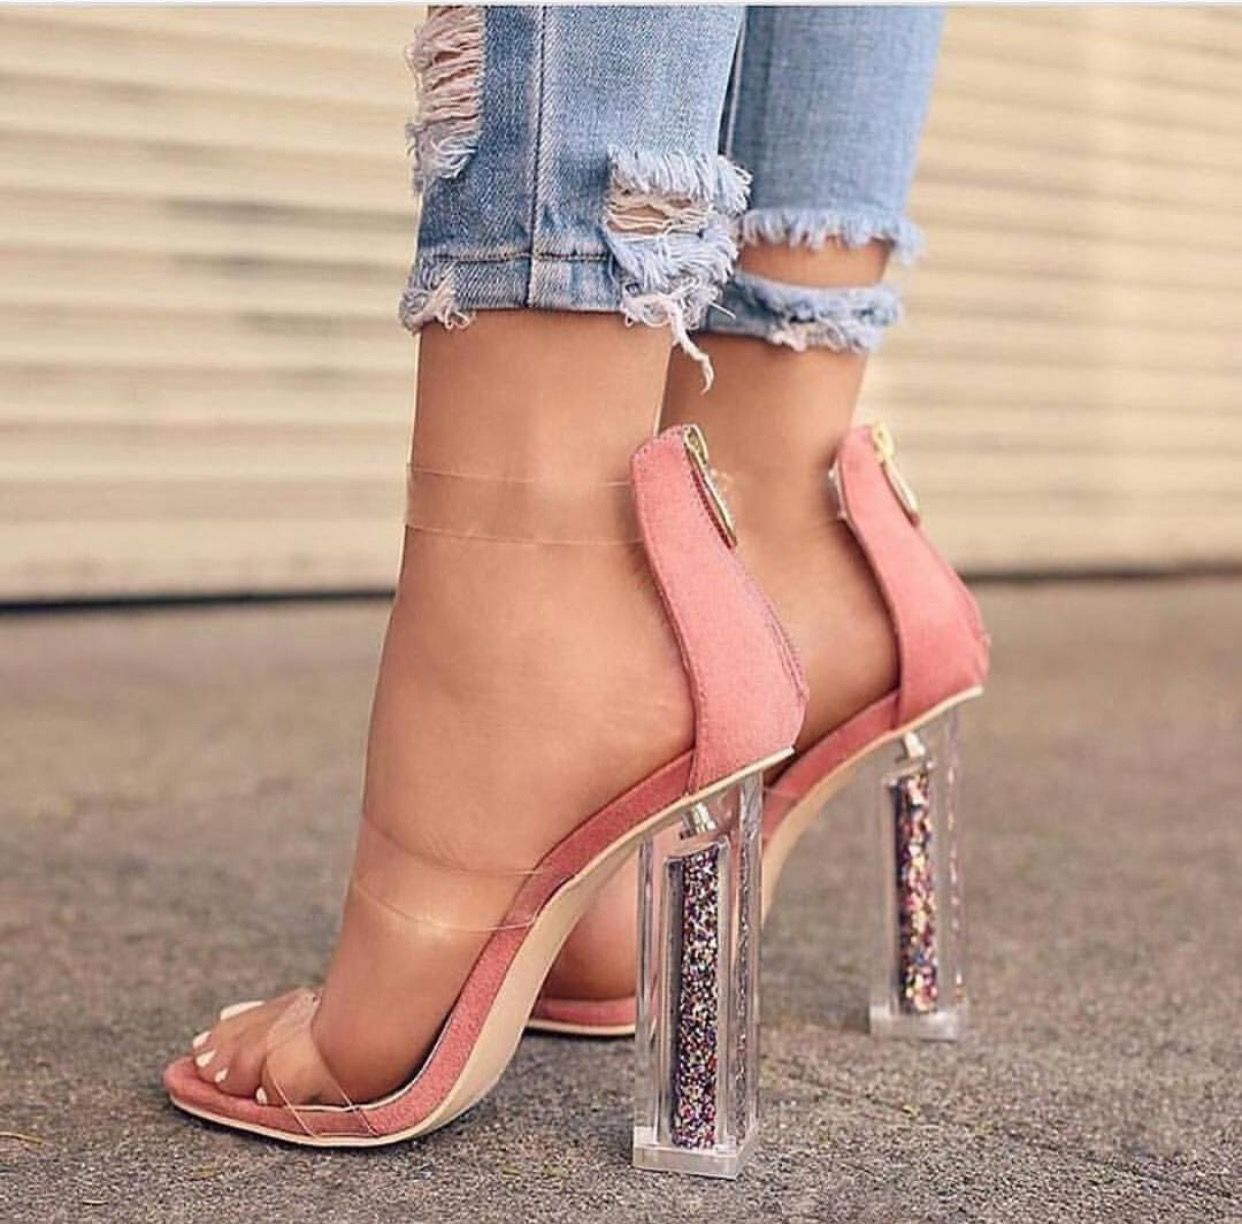 FASHION DOLL SHOES FOR SMALL FEET-PINK ANKLE STRAP  OPEN TOE HIGH HEELS